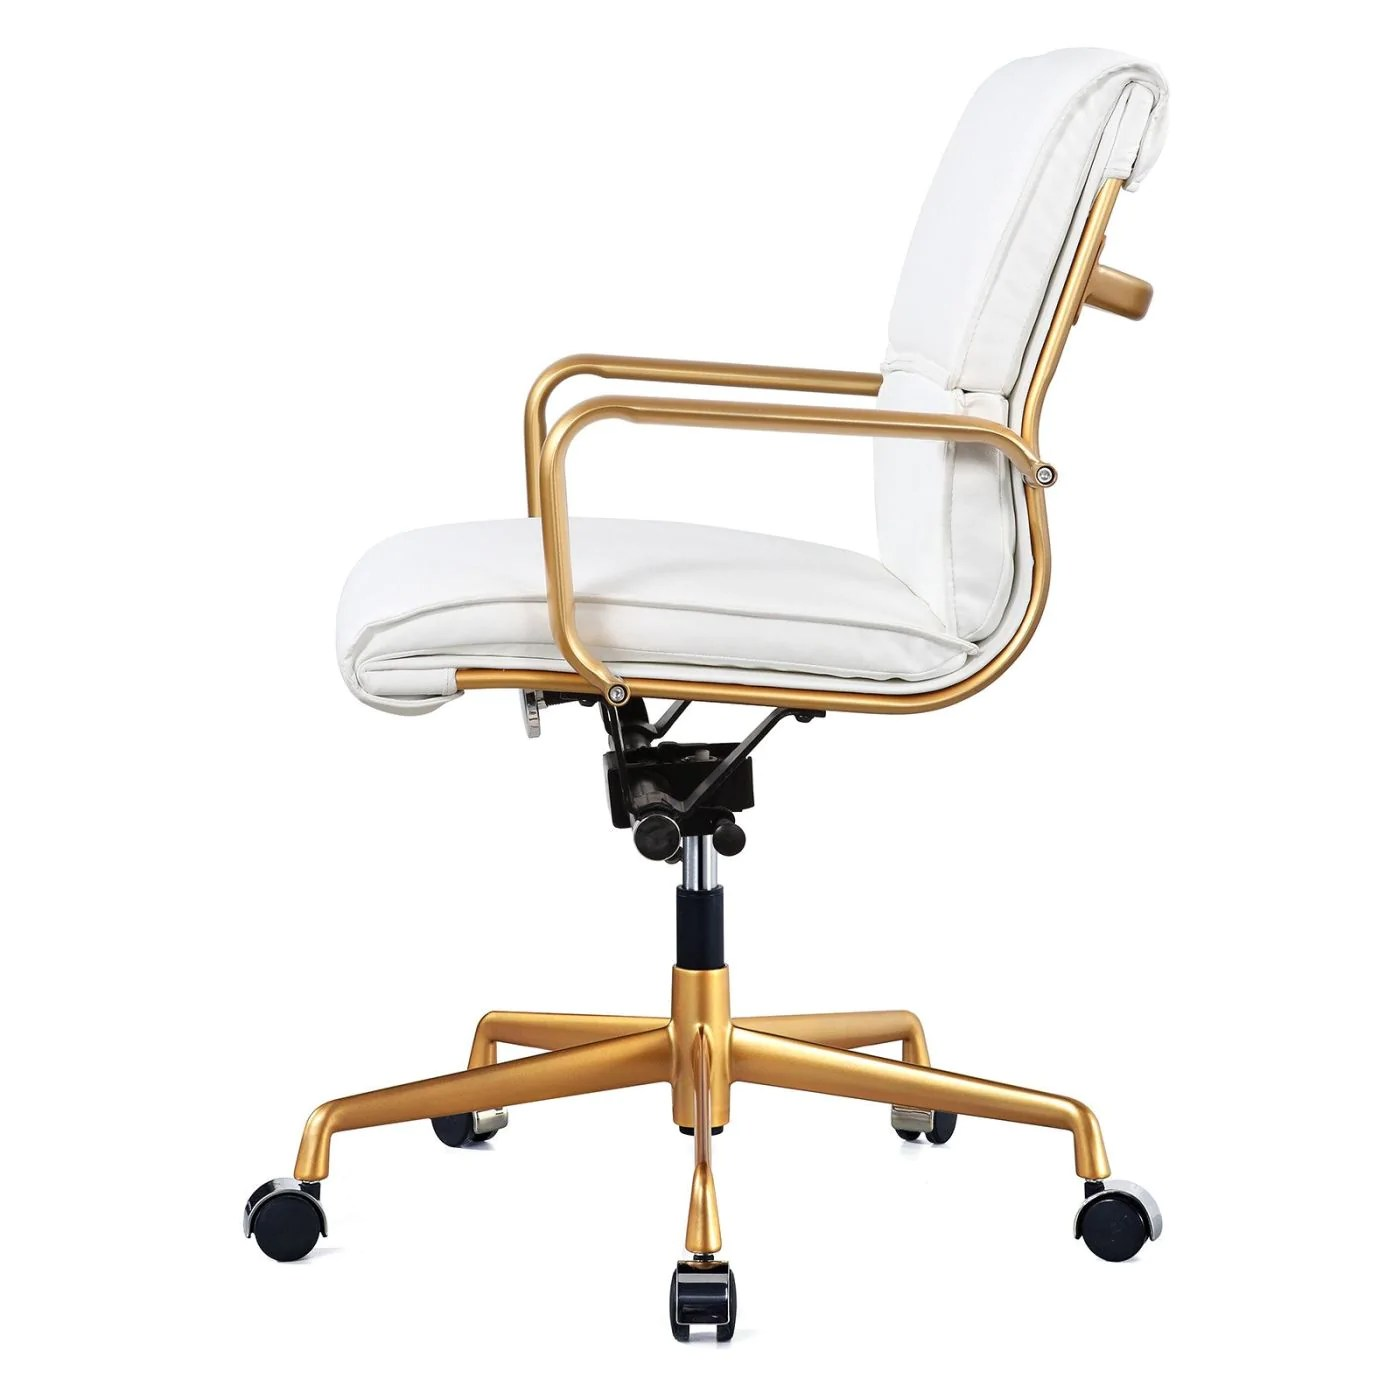 dorado office chair wedding cover hire brighton meelano 330 gd whi in gold and white vegan